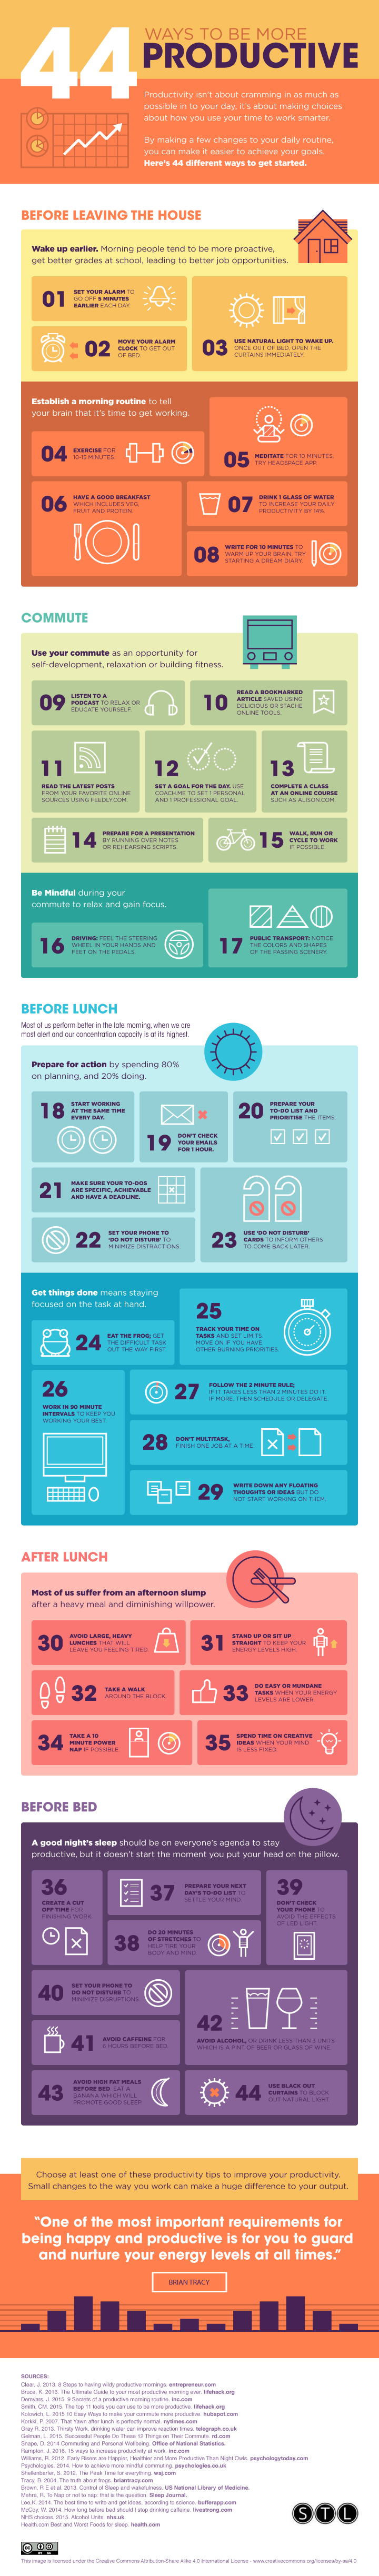 infographic 44 ways to be more productive matador network. Black Bedroom Furniture Sets. Home Design Ideas